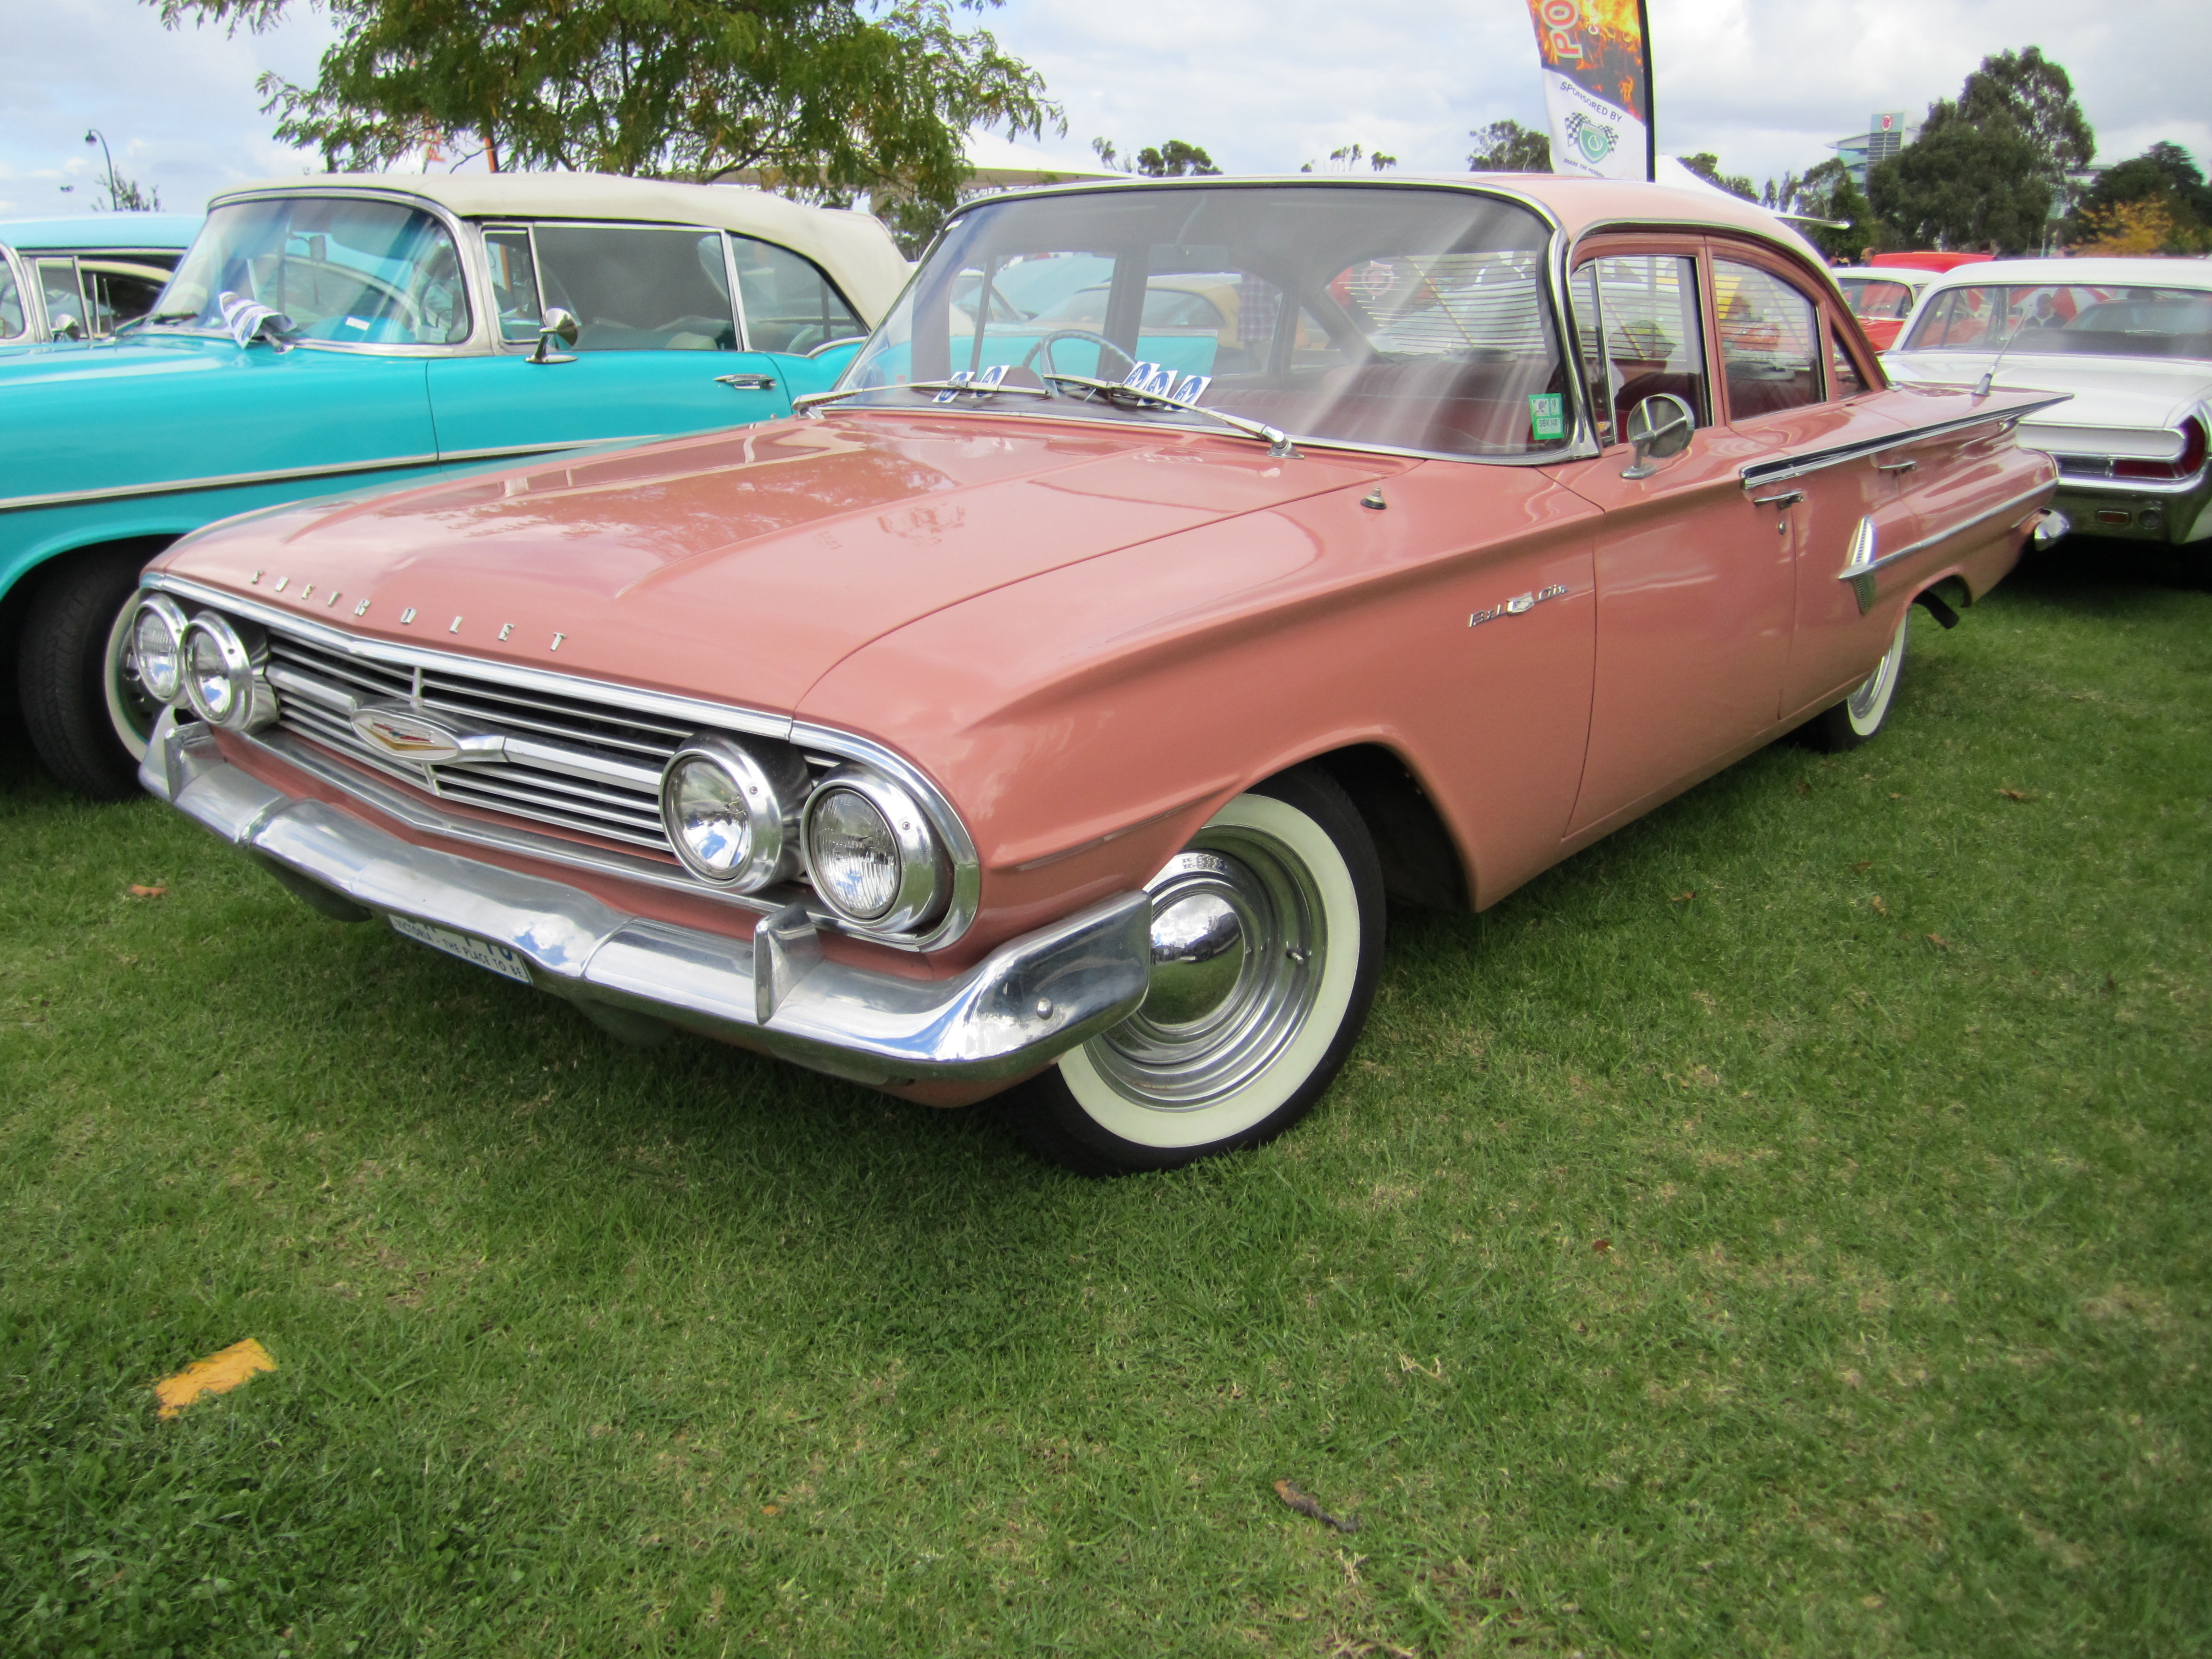 File:1960 Chevrolet Bel Air Sedan.jpg - Wikimedia Commons